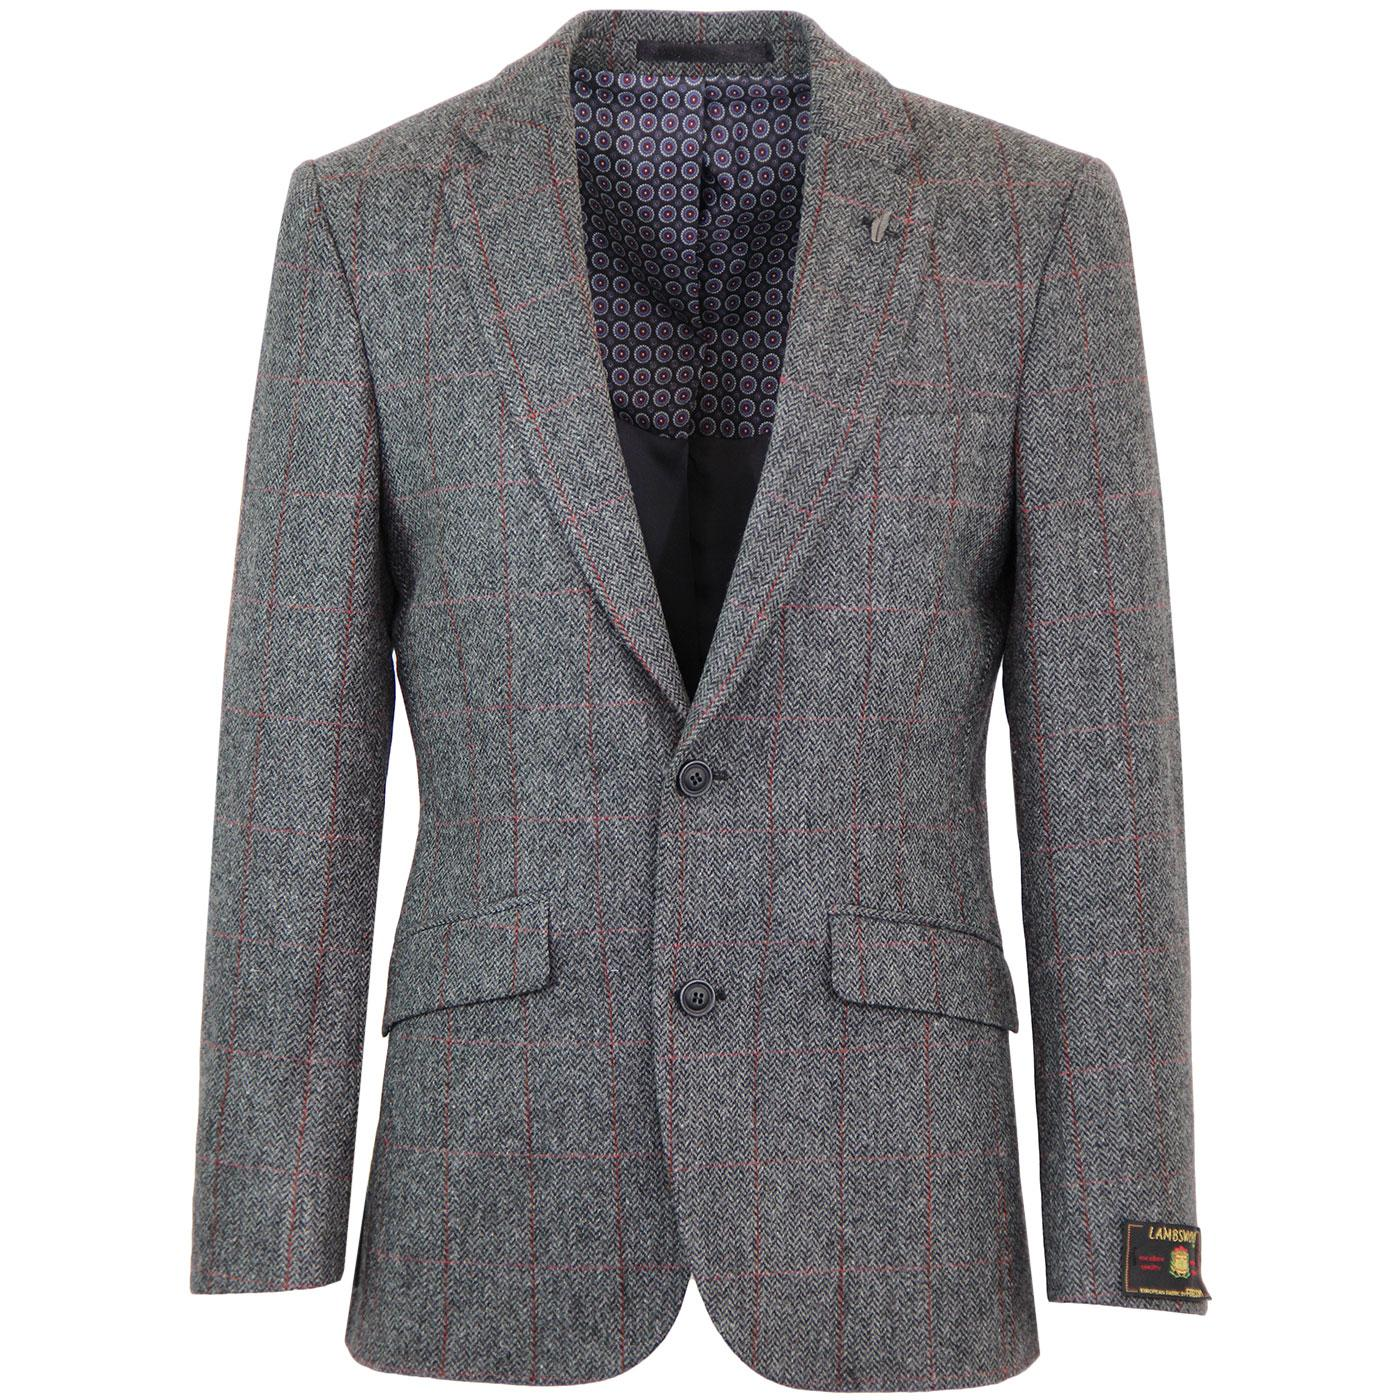 Mod Herringbone Windowpane Check Blazer Jacket (C)